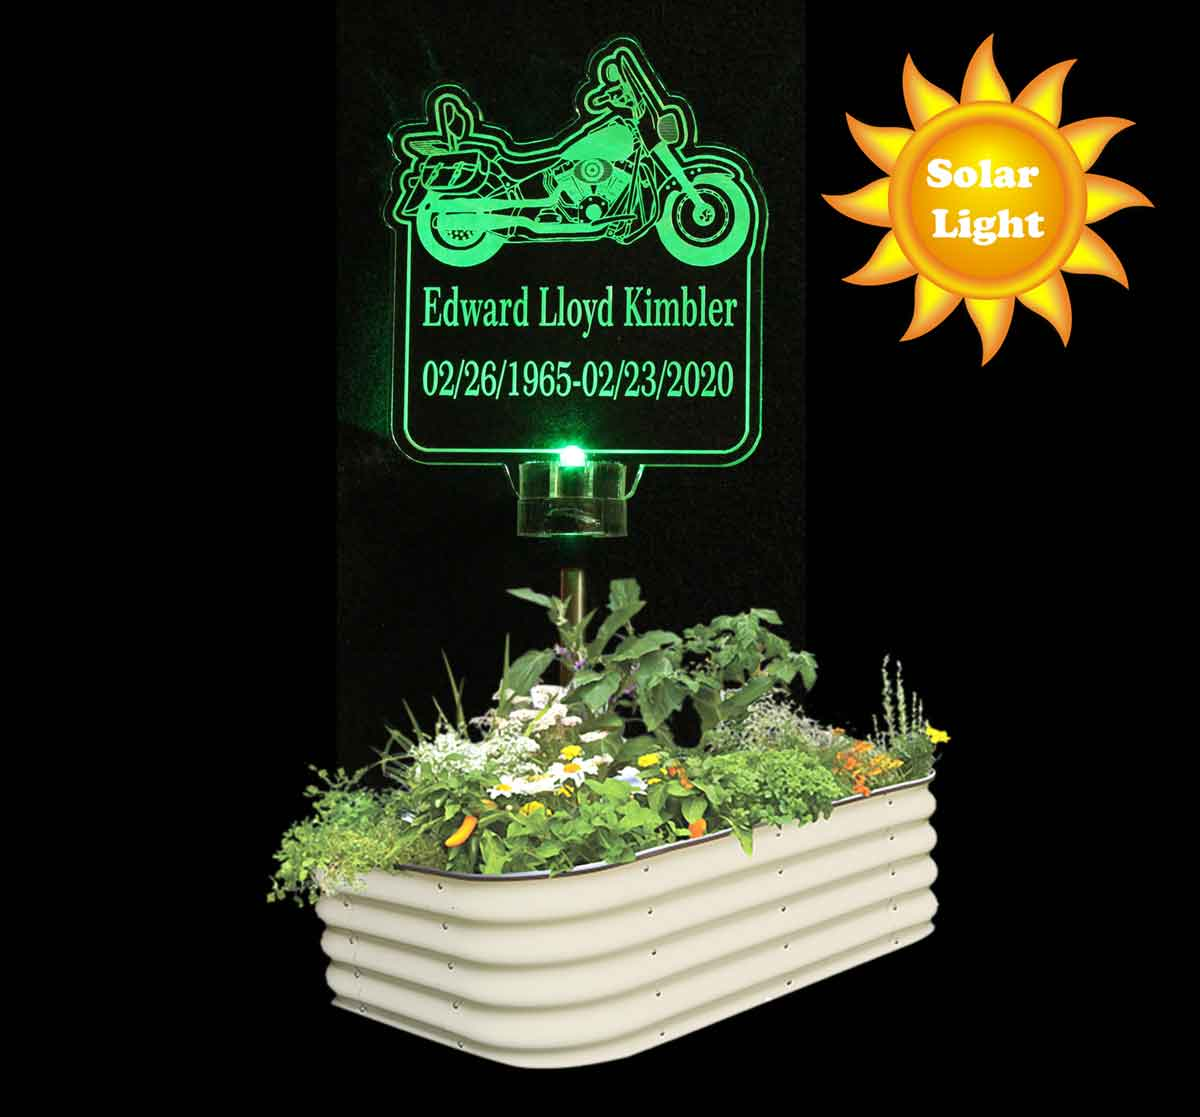 Motorcycle Solar Lihgt Personalized Garden light, Grave Marker